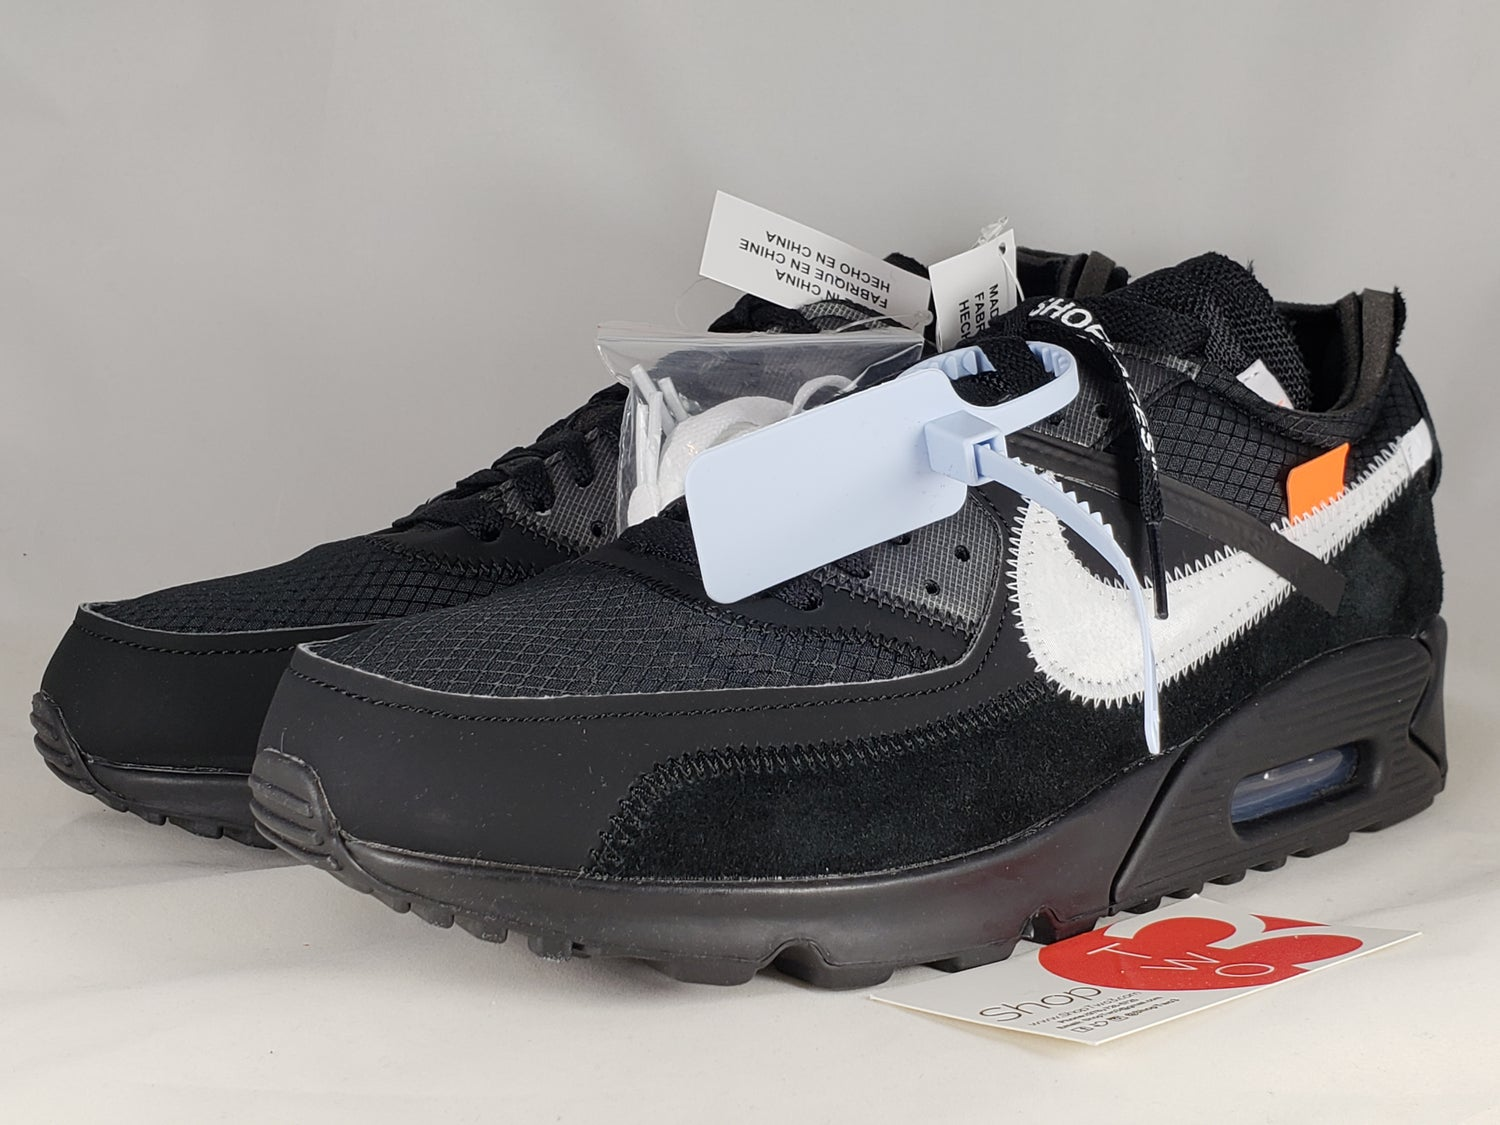 check out 03760 f17a9 Nike Air Max 90 Off-White Black